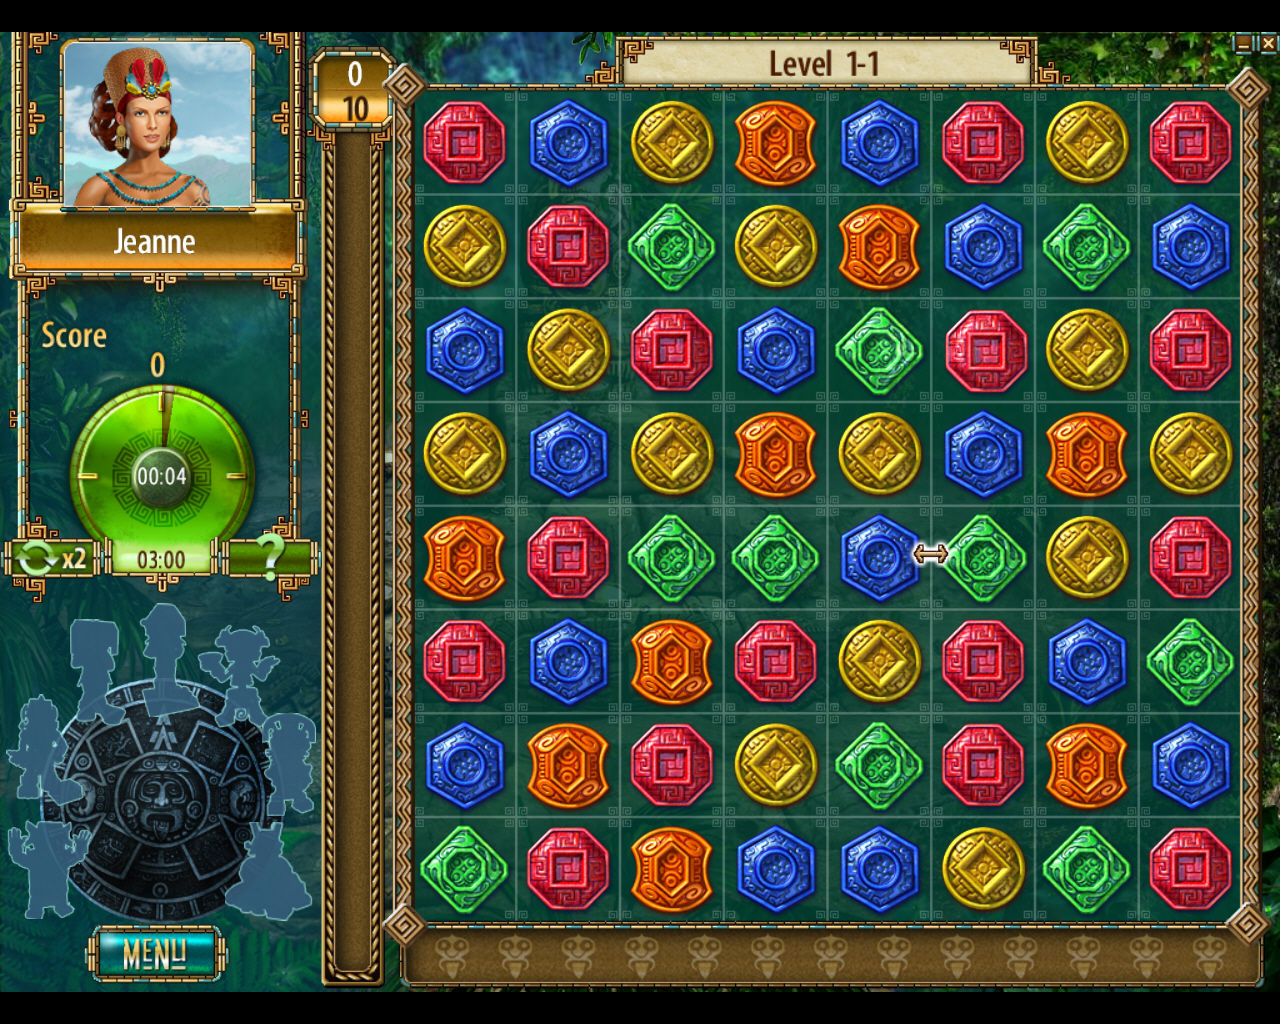 The Treasures of Montezuma 2 Windows Level 1-1 starts. Notice the number of gems needed for this level is shown to the left of the board at the top.